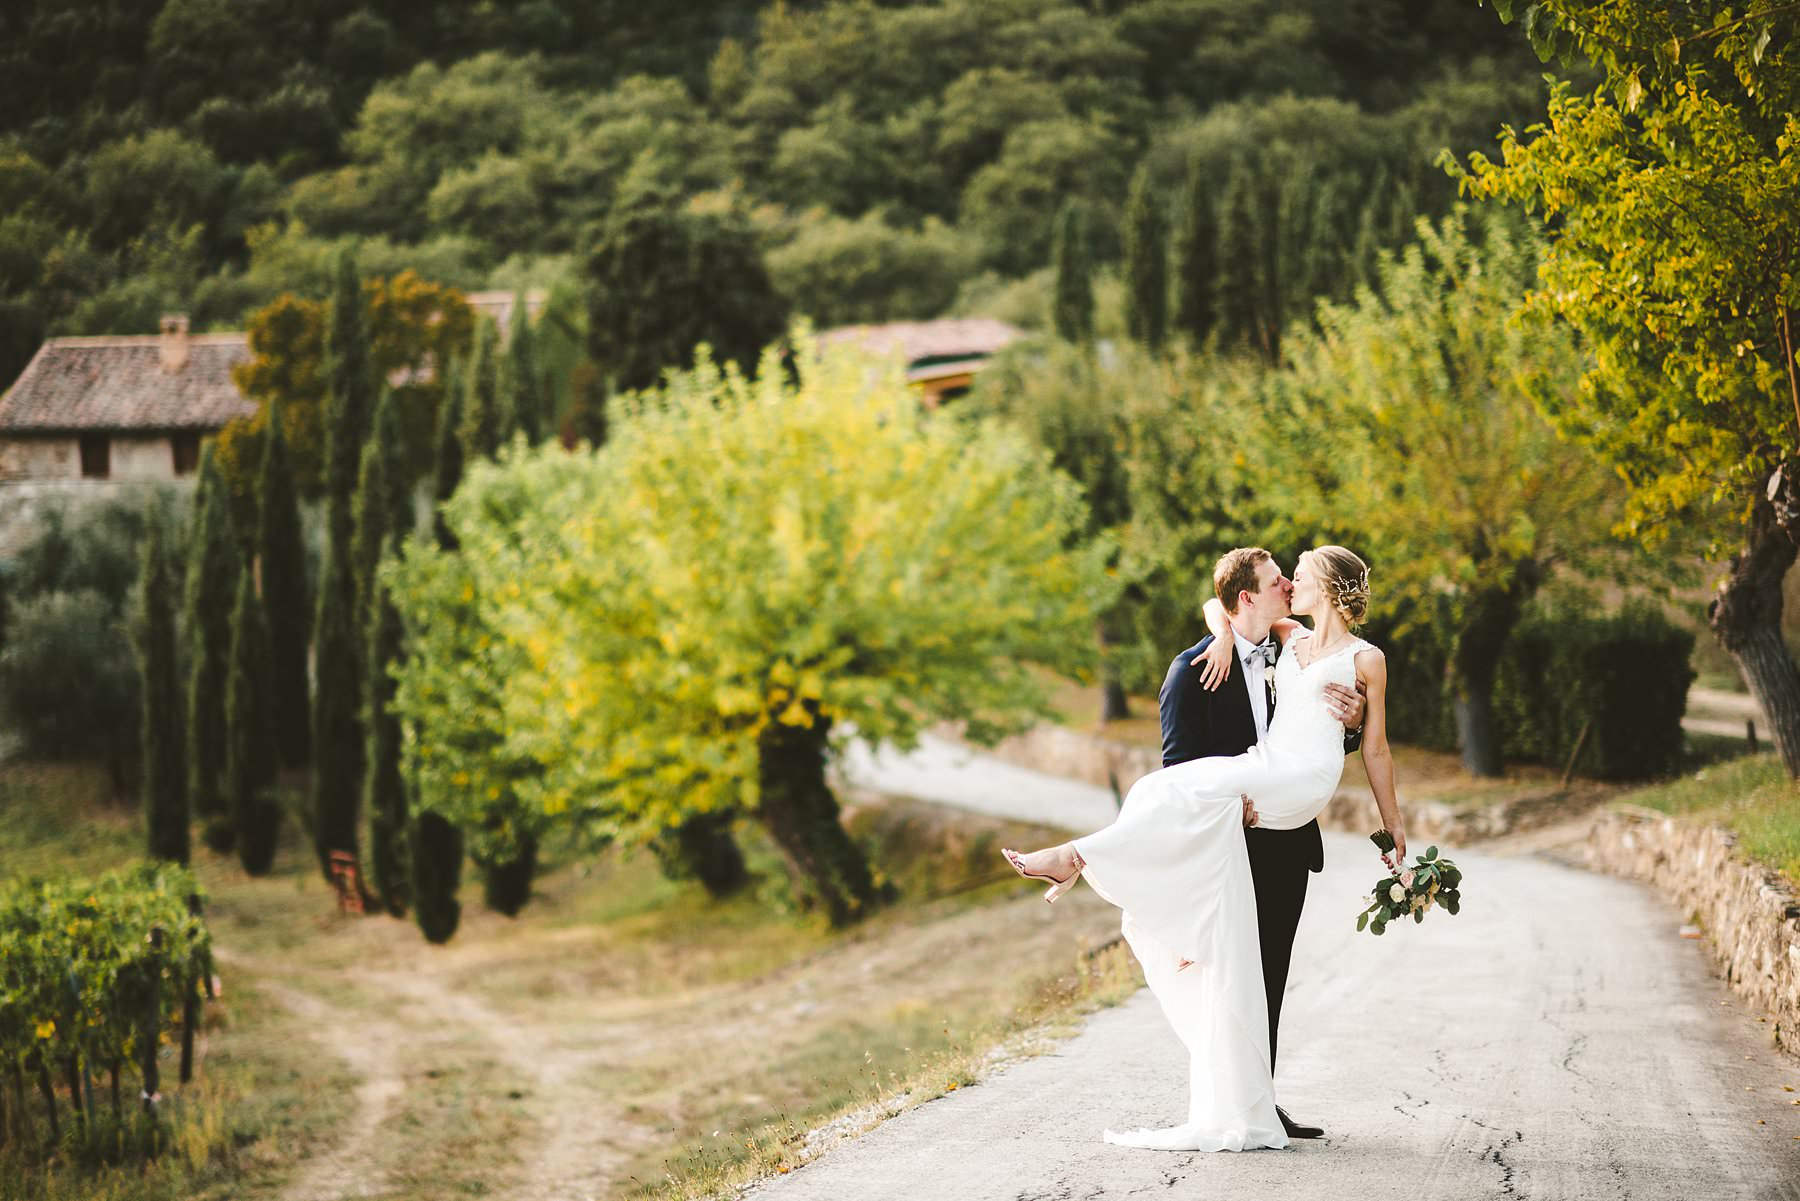 Getting married in the Italian countryside. Elegant Australian wedding couple portrait around the property of Villa Monte Solare, a historic residence tucked in the countryside among rolling hills. The settings were countryside landscapes with cypress lines, olive groves and a stunning wall covered in red ivy leaves